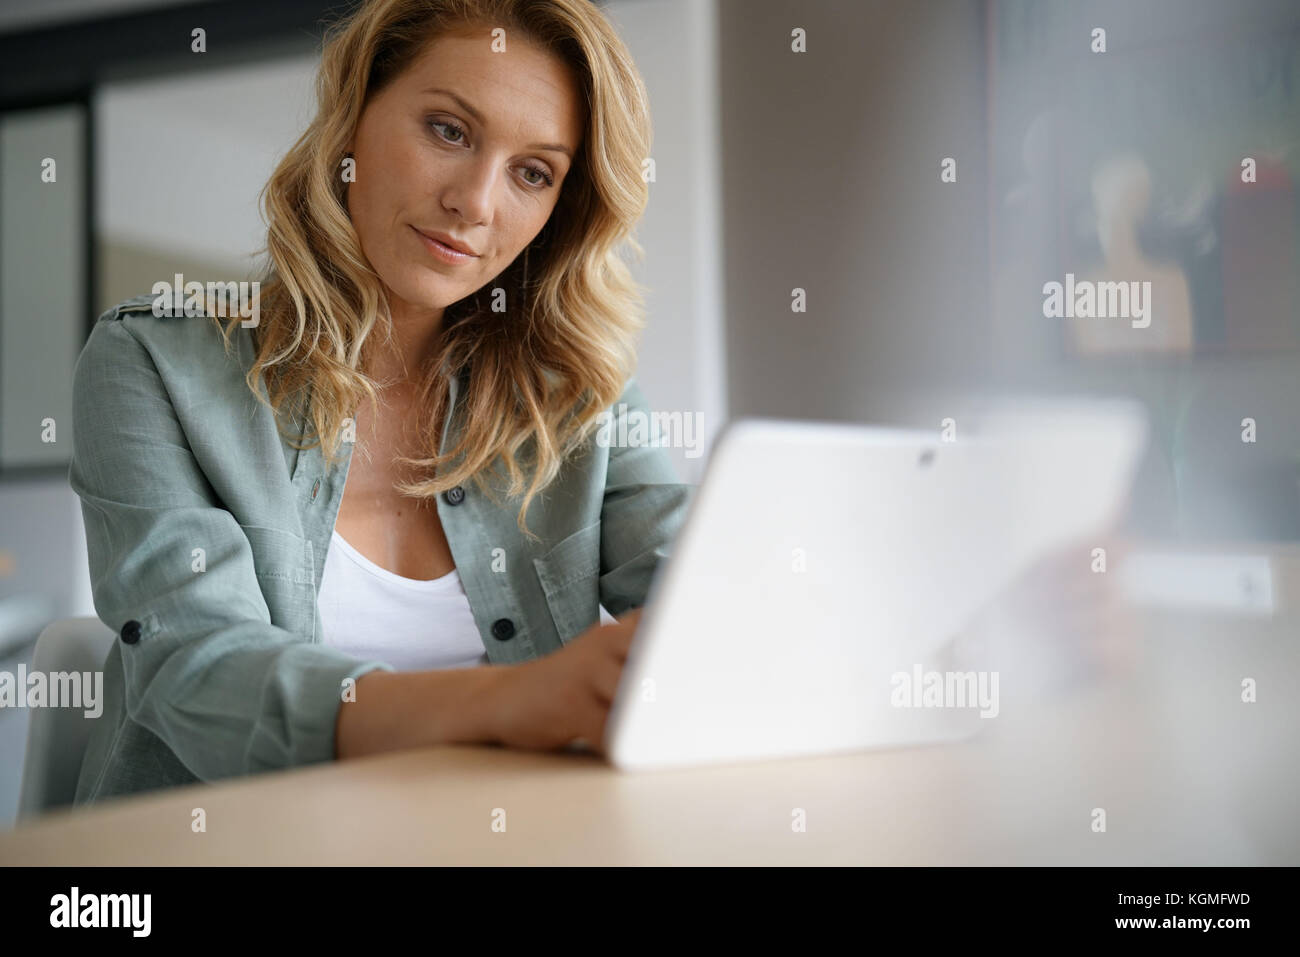 Woman sitting at home websufing on internet with digital tablet - Stock Image